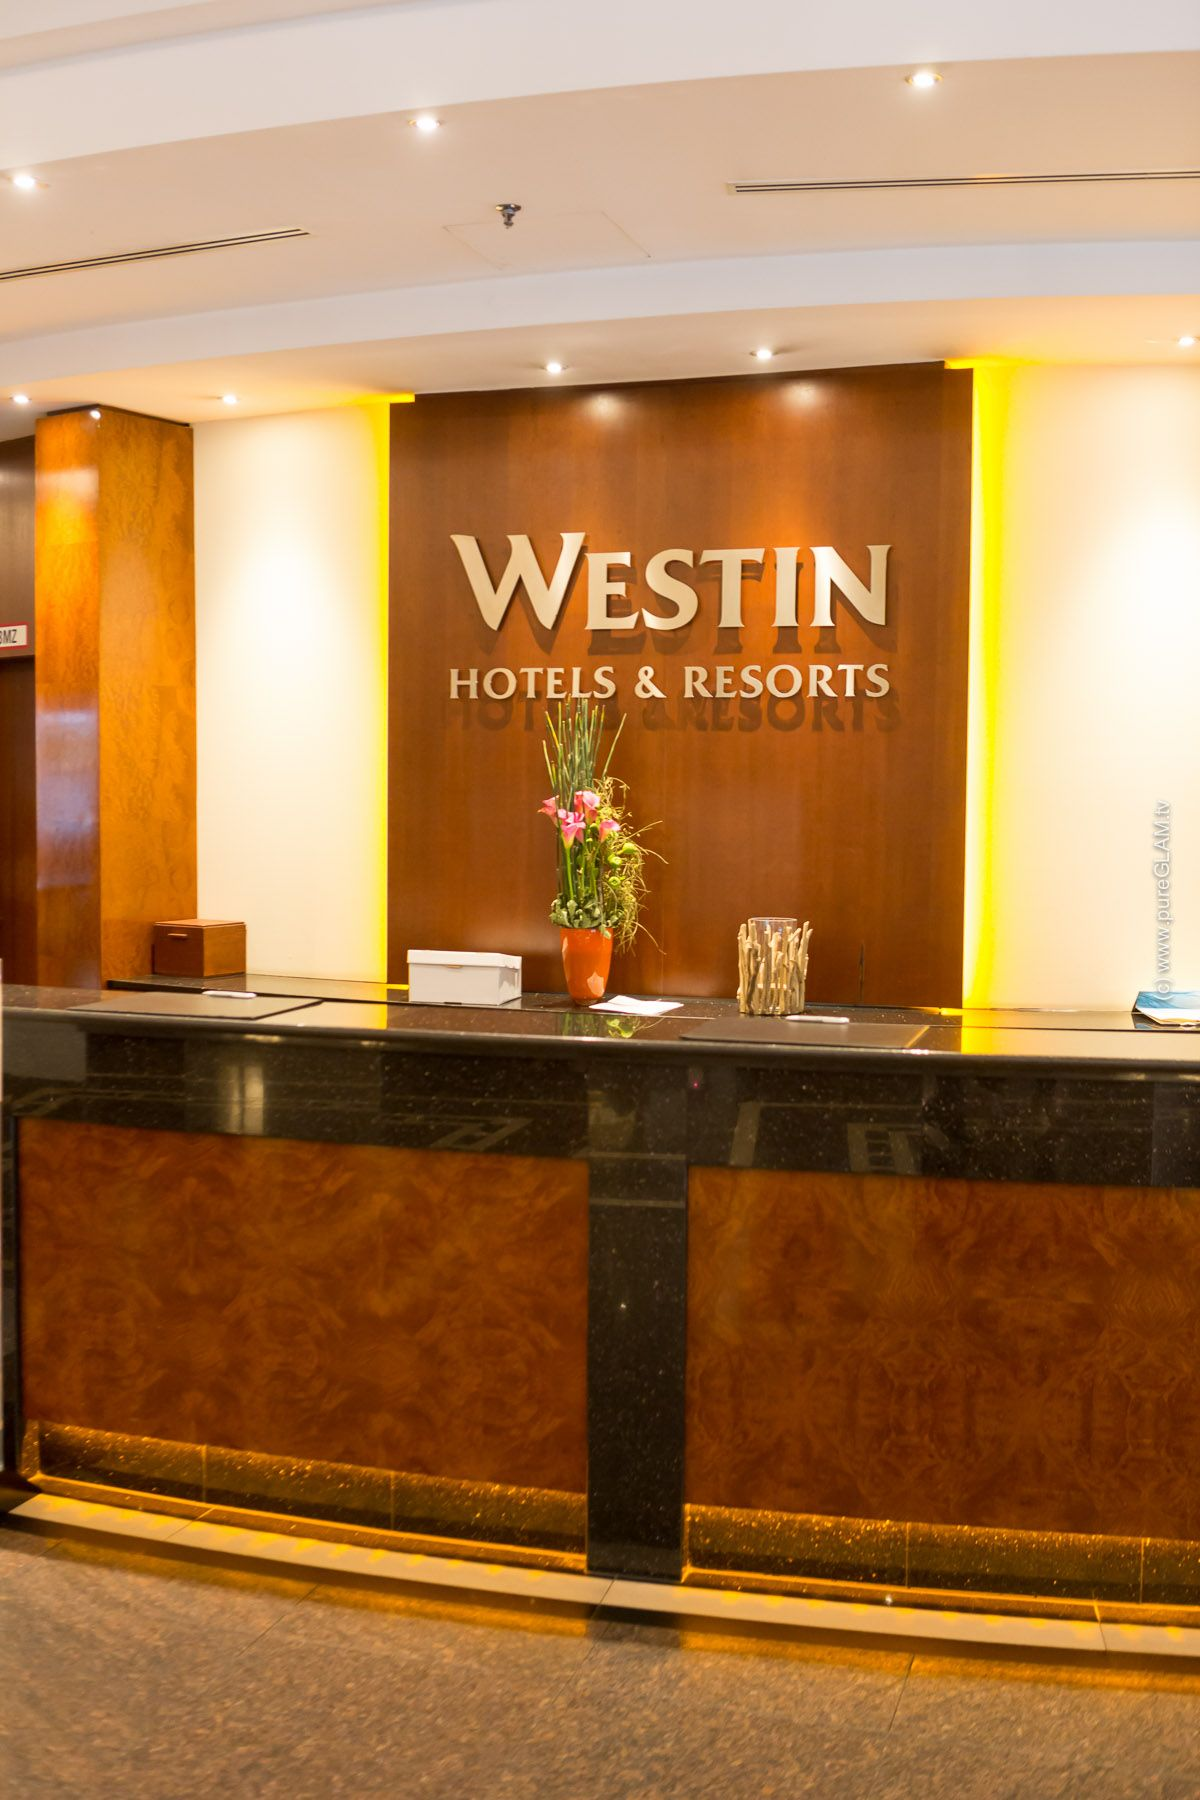 The Westin Grand Munchen Hotel Arabellastrasse From Our Guests